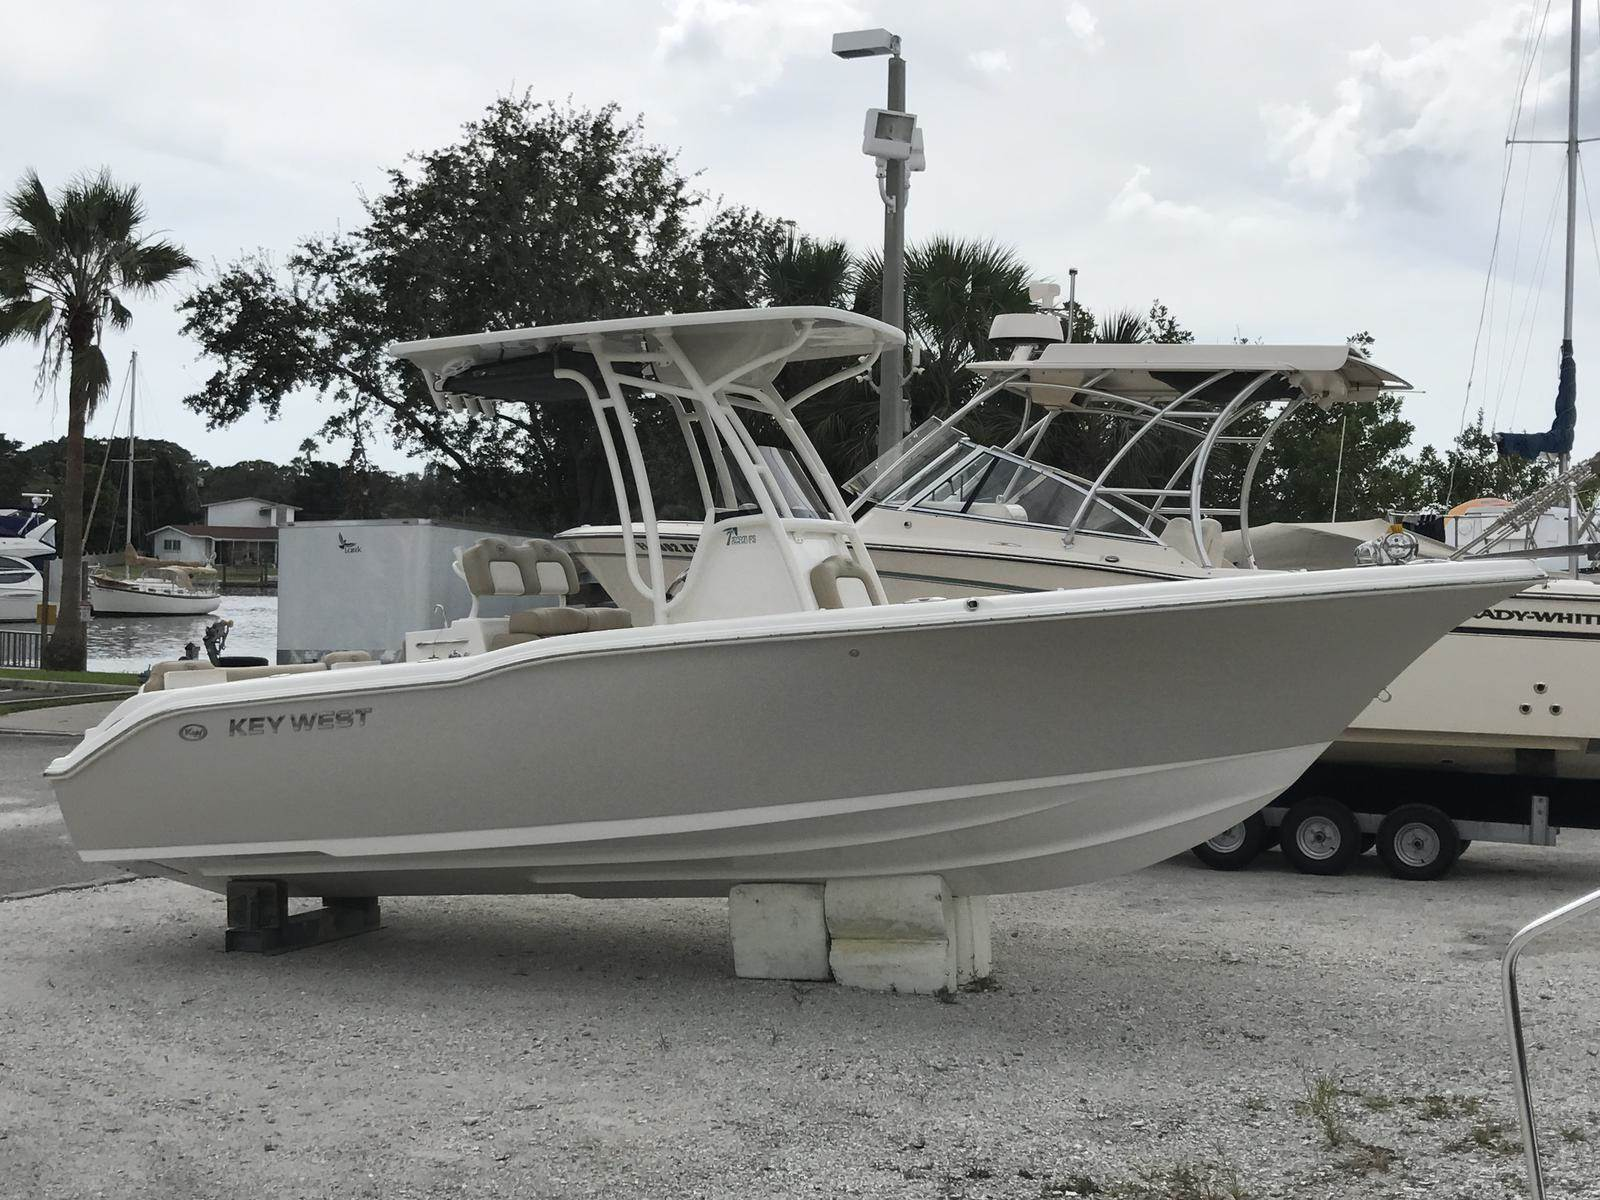 NEW 2018 Key West Boats, Inc. 239 FS - Sara Bay Marina